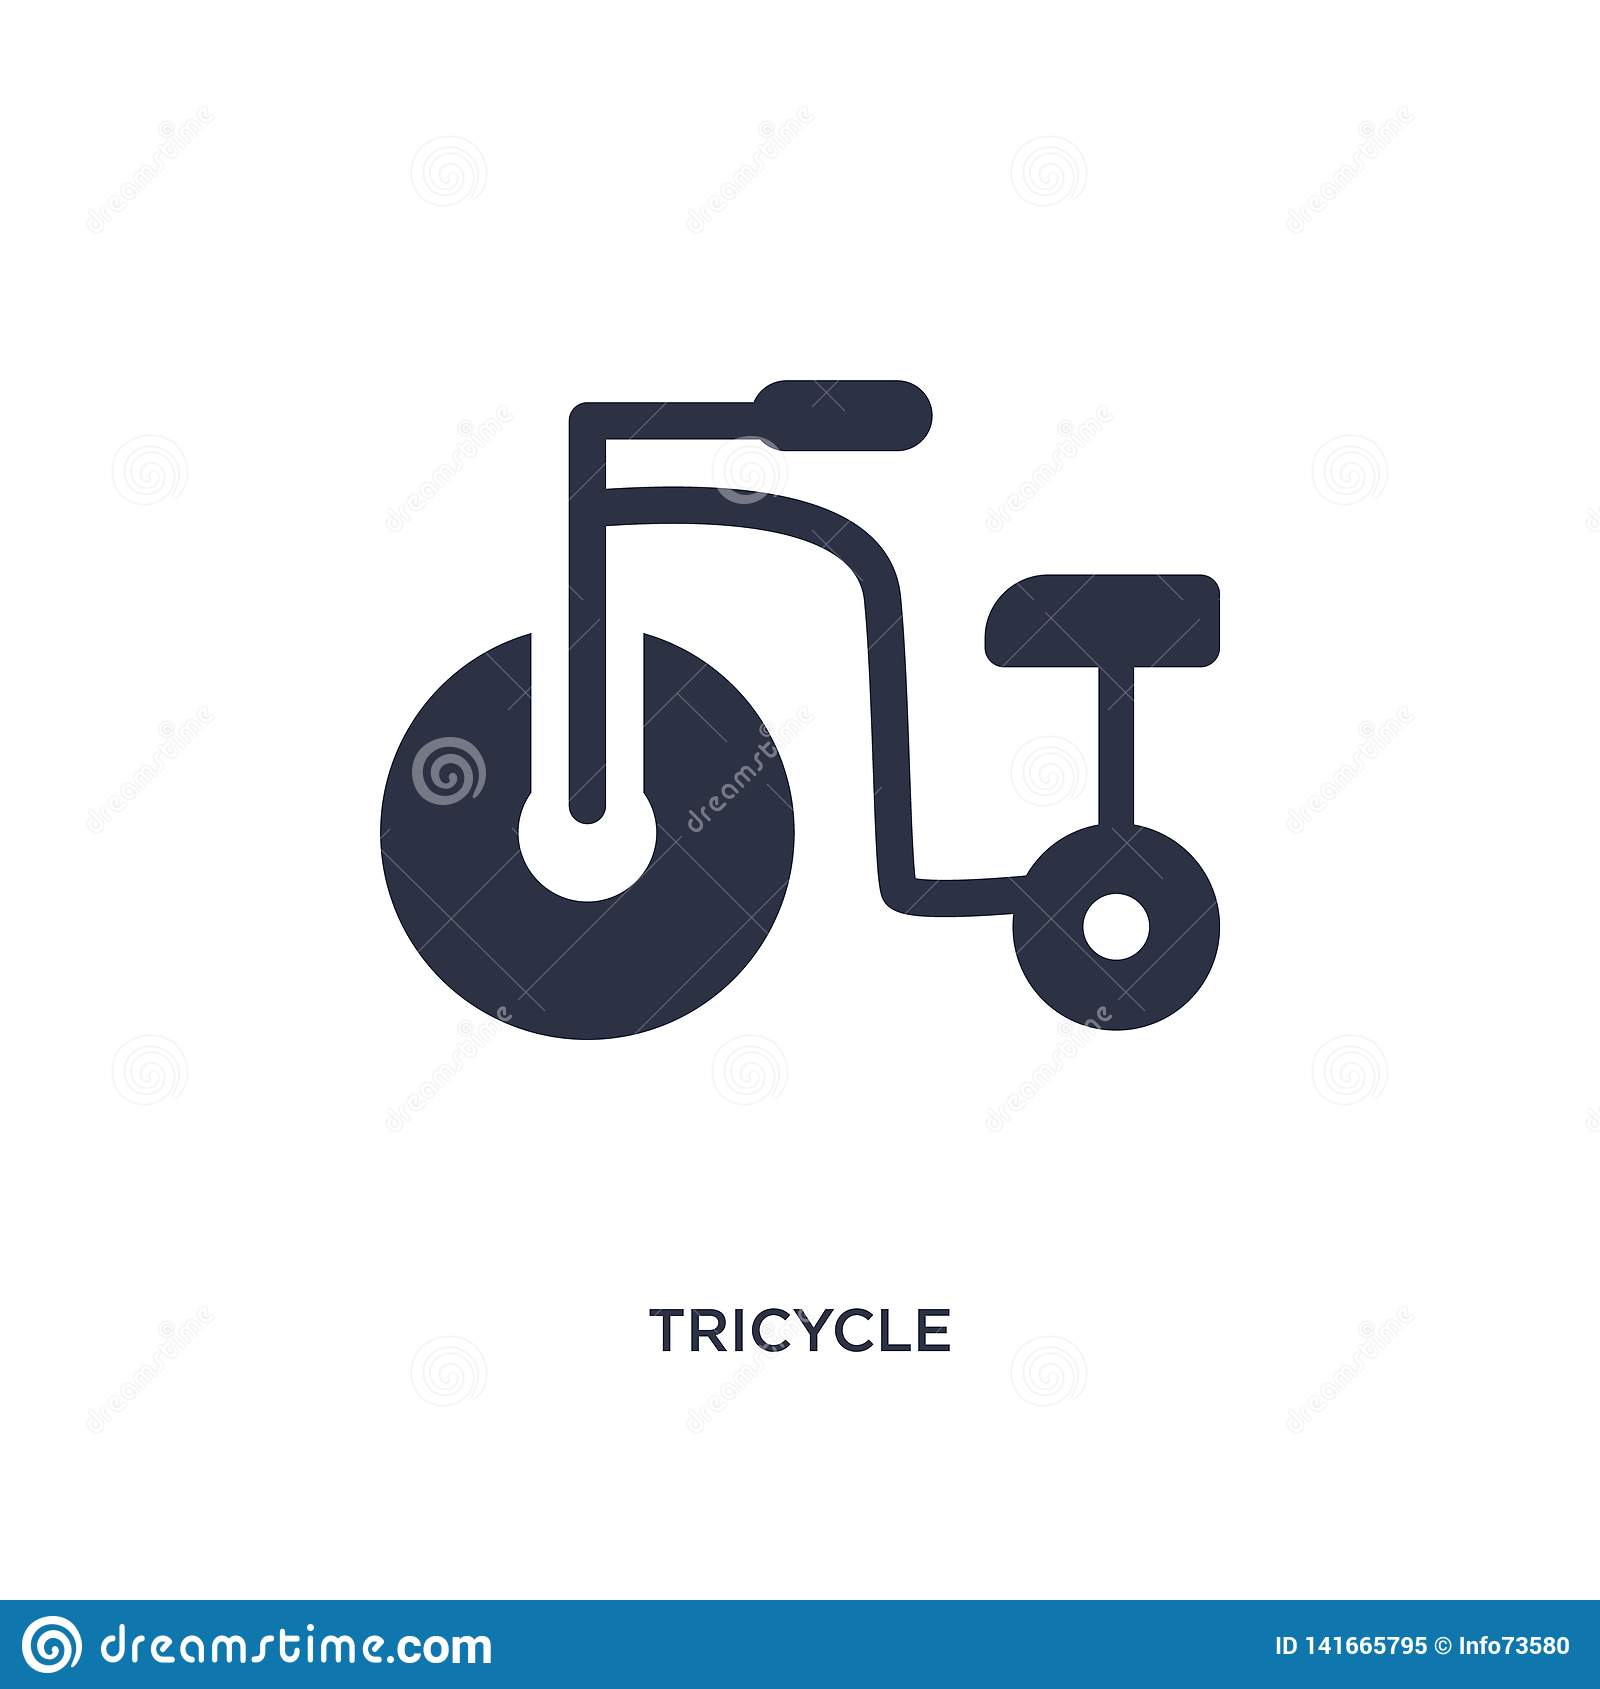 tricycle icon on white background. Simple element illustration from kid and baby concept